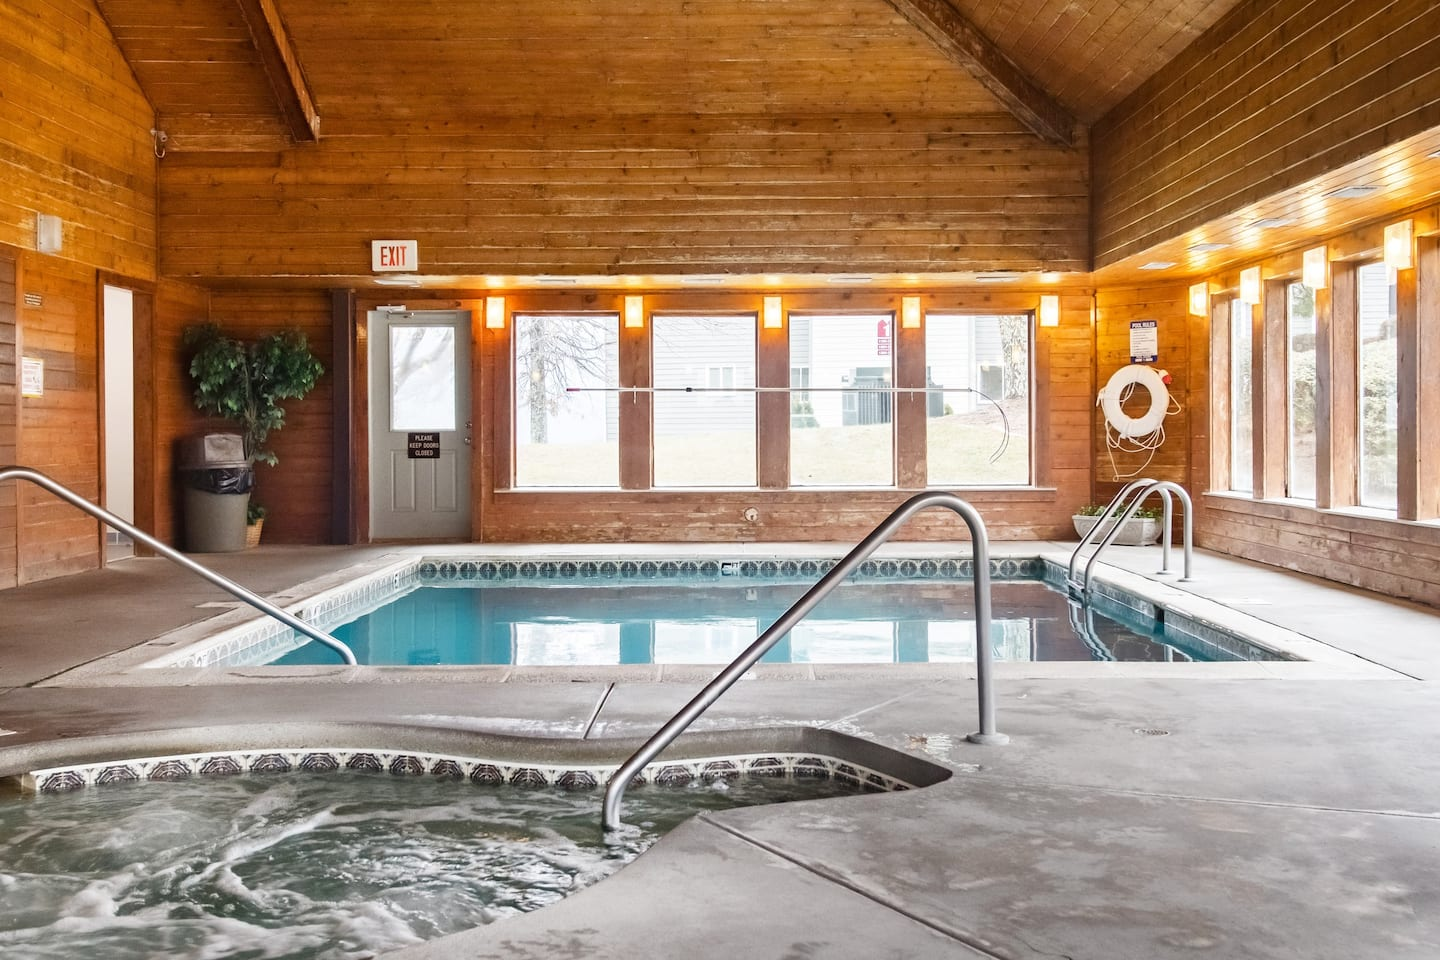 airbnb gatlinburg tennessee with jacuzzi